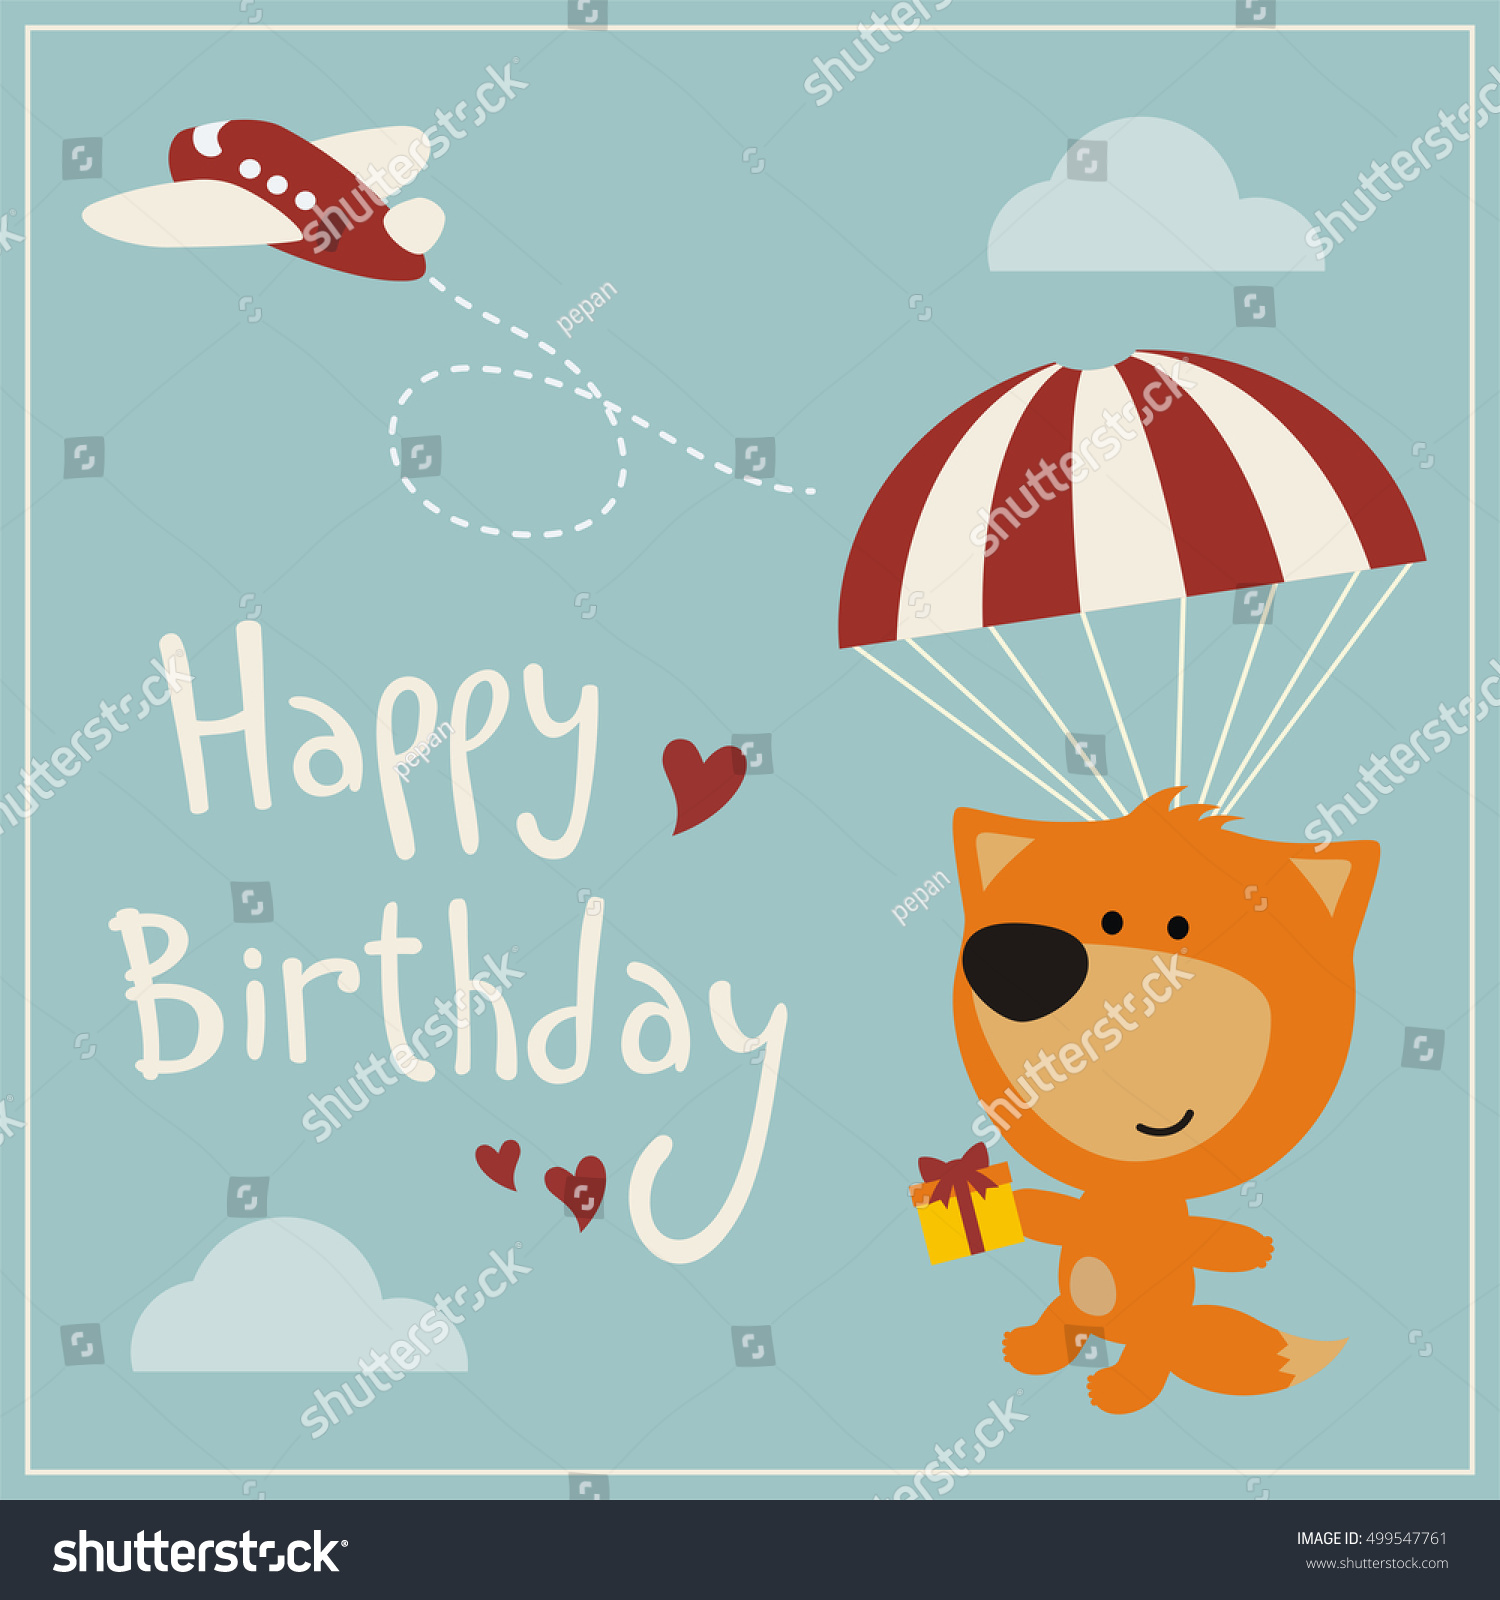 flying birthday card ; stock-vector-happy-birthday-funny-fox-flying-on-parachute-with-gift-in-cartoon-style-greeting-card-499547761